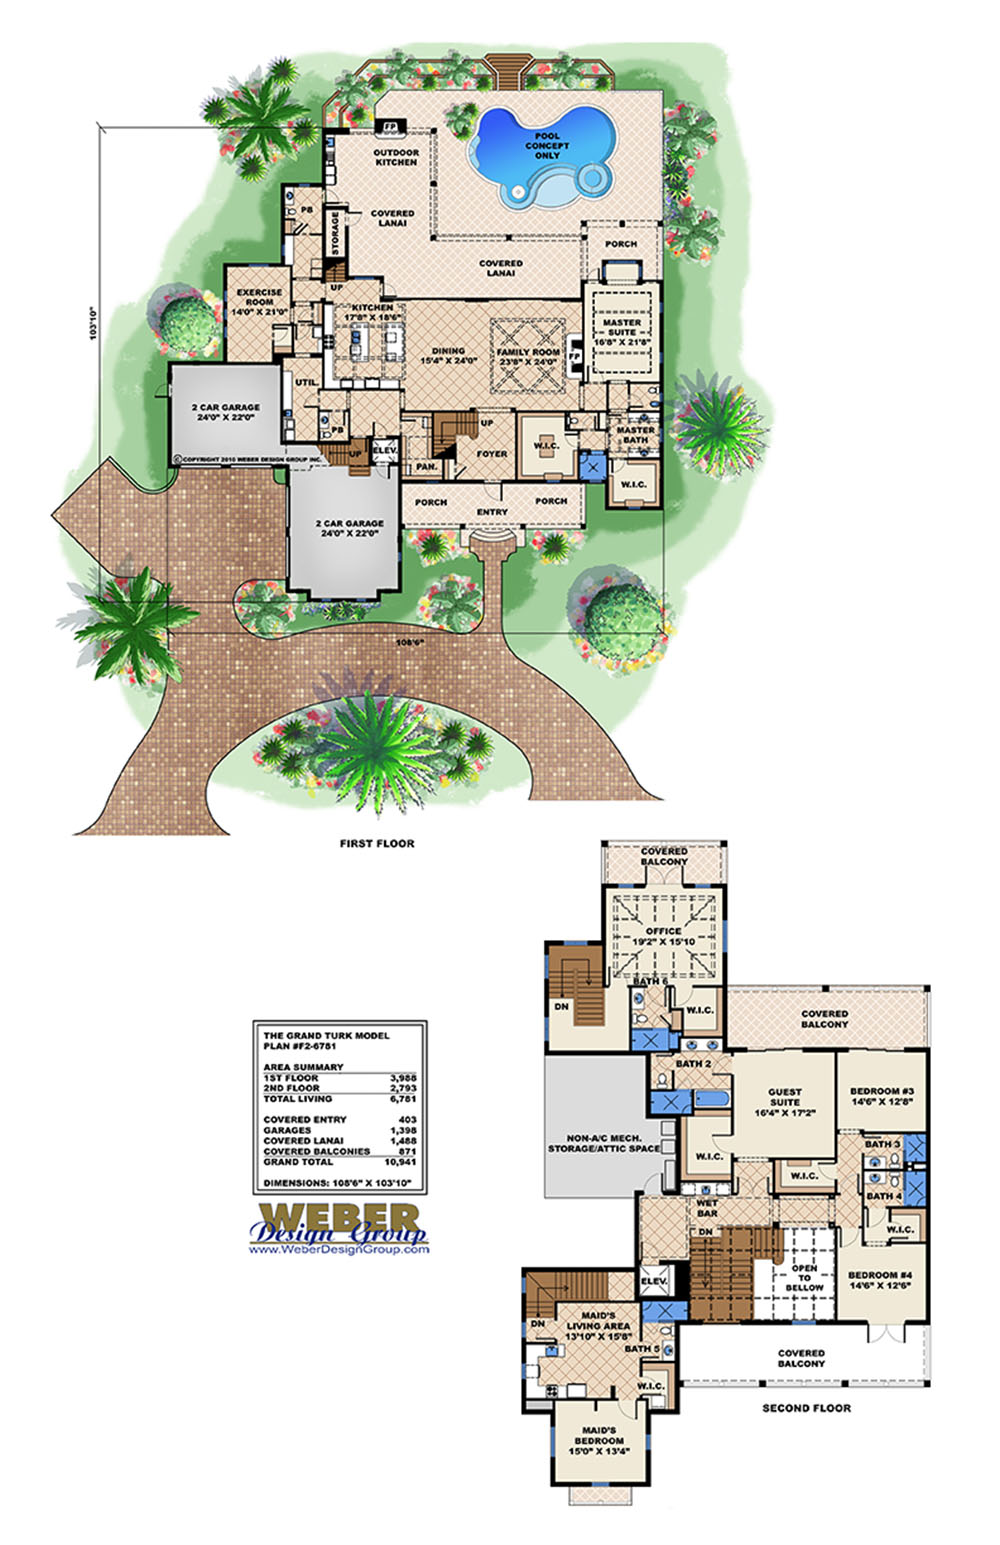 Luxury house plans weber design group inc stock for Weber house plans